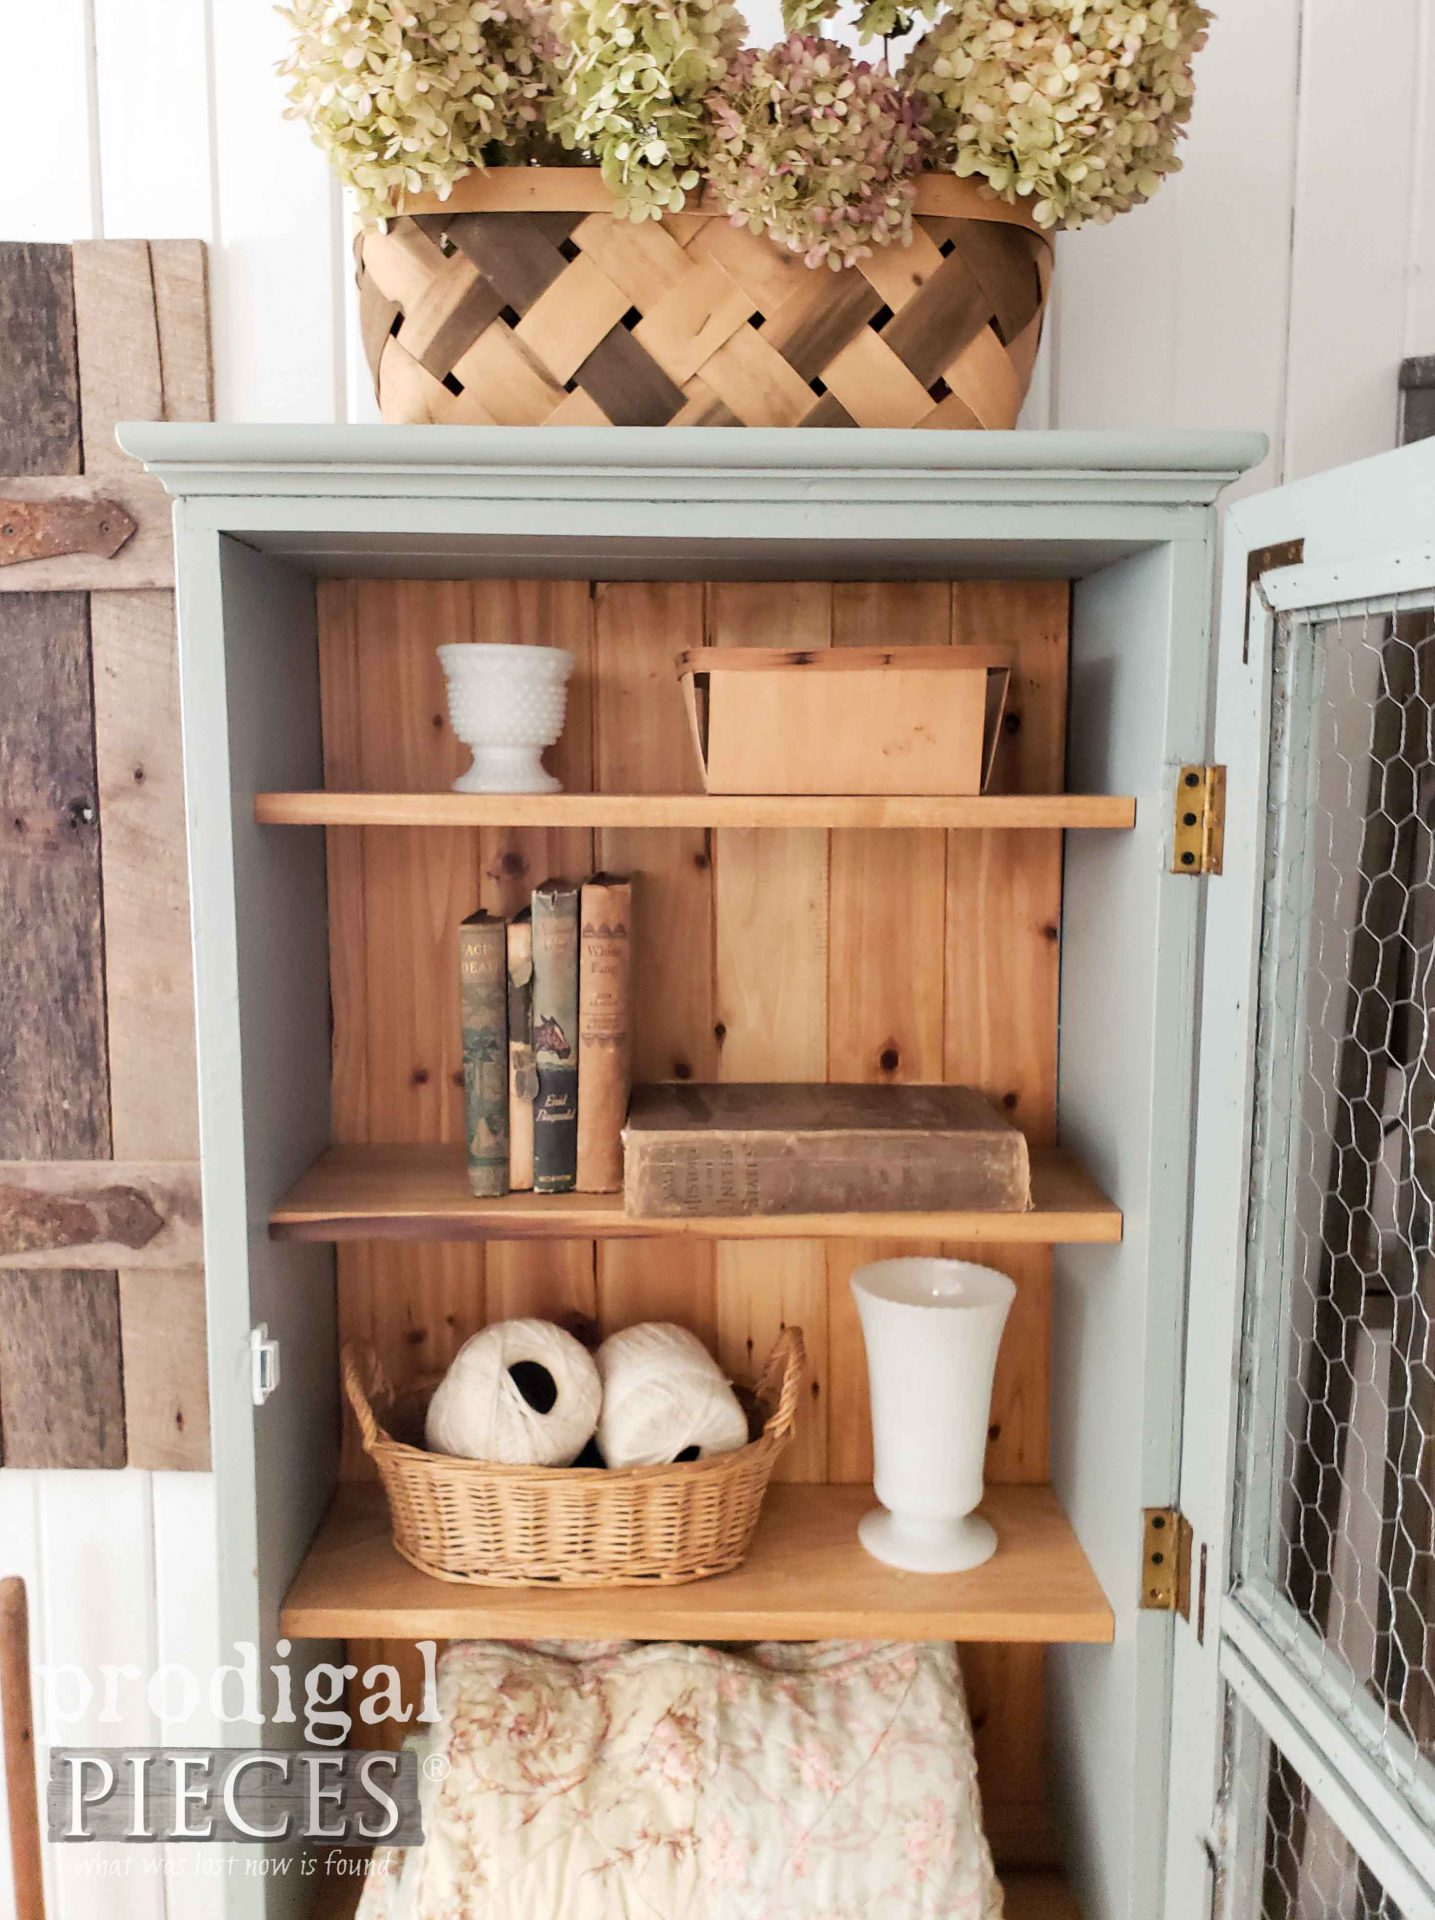 Rustic Cupboard Created by Larissa of Prodigal Pieces from Repurposed Gun Cabinet | prodigalpieces.com #prodigalpieces #farmhouse #diy #home #furniture #homedecor